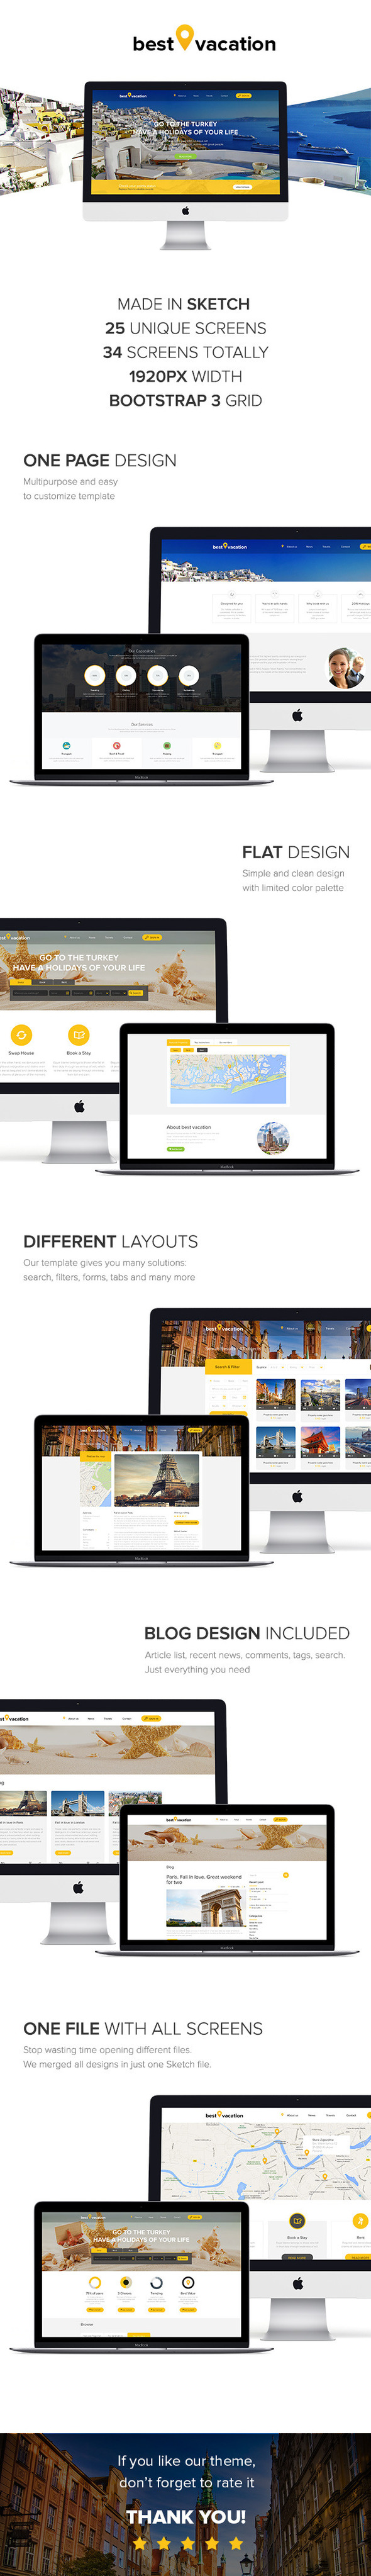 Best Vacation Holiday Web Sketch Template